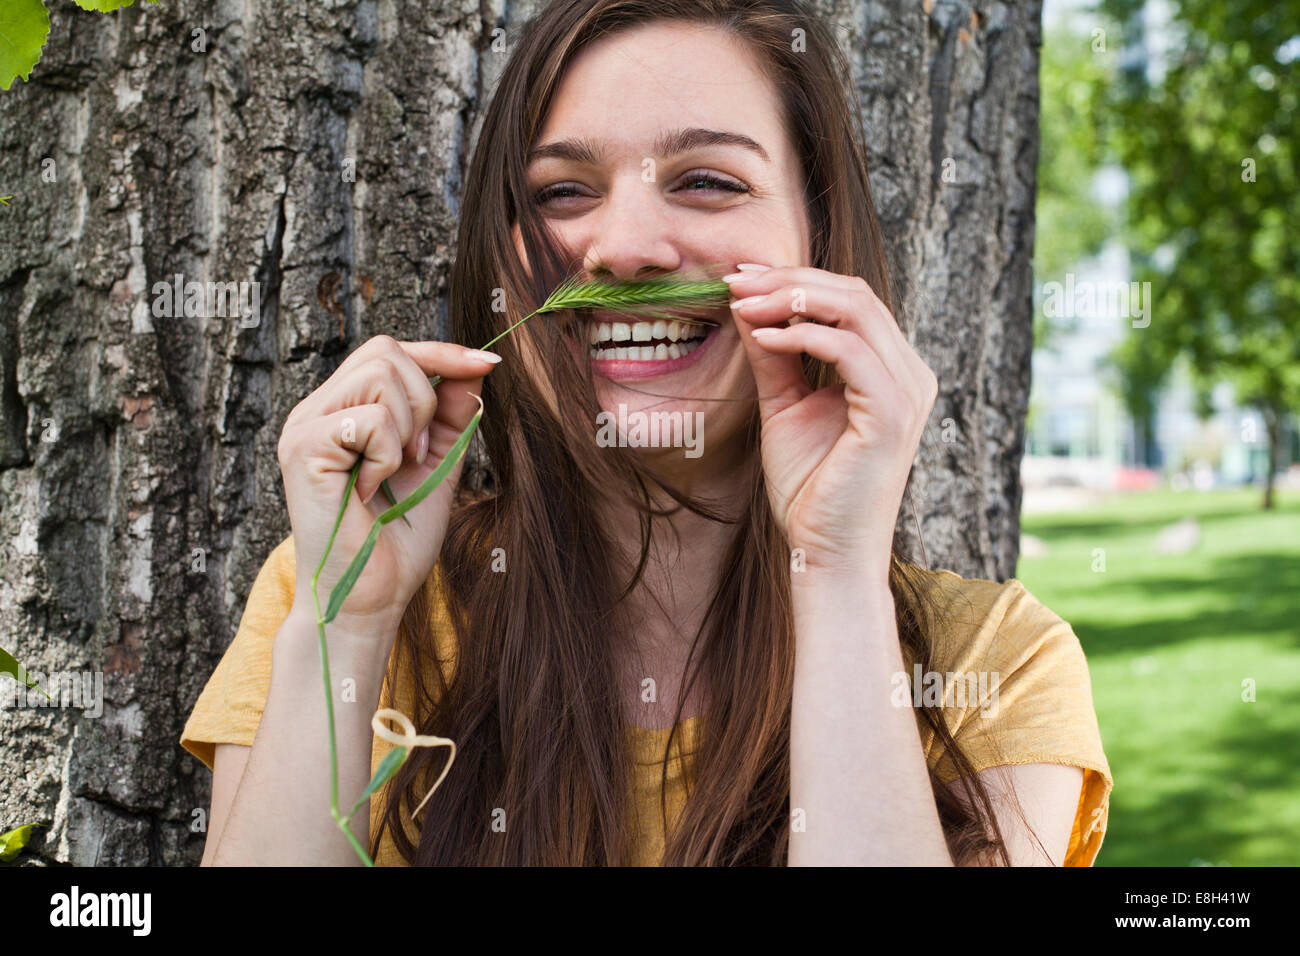 Portrait of young woman holding spike in her face like a moustache - Stock Image